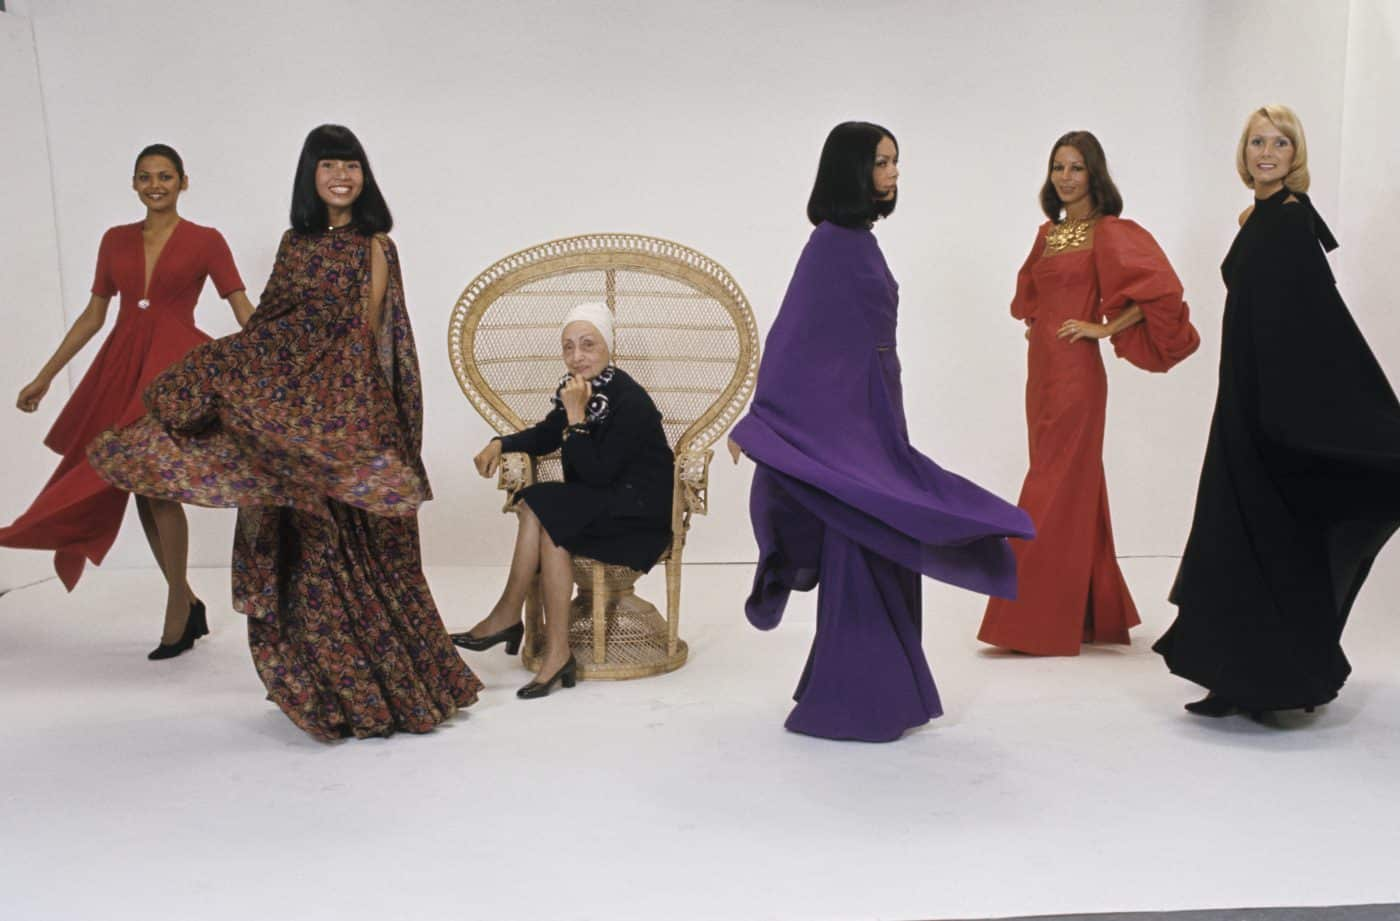 photo of Madame Grès at her Paris boutique amongst models wearing her designs